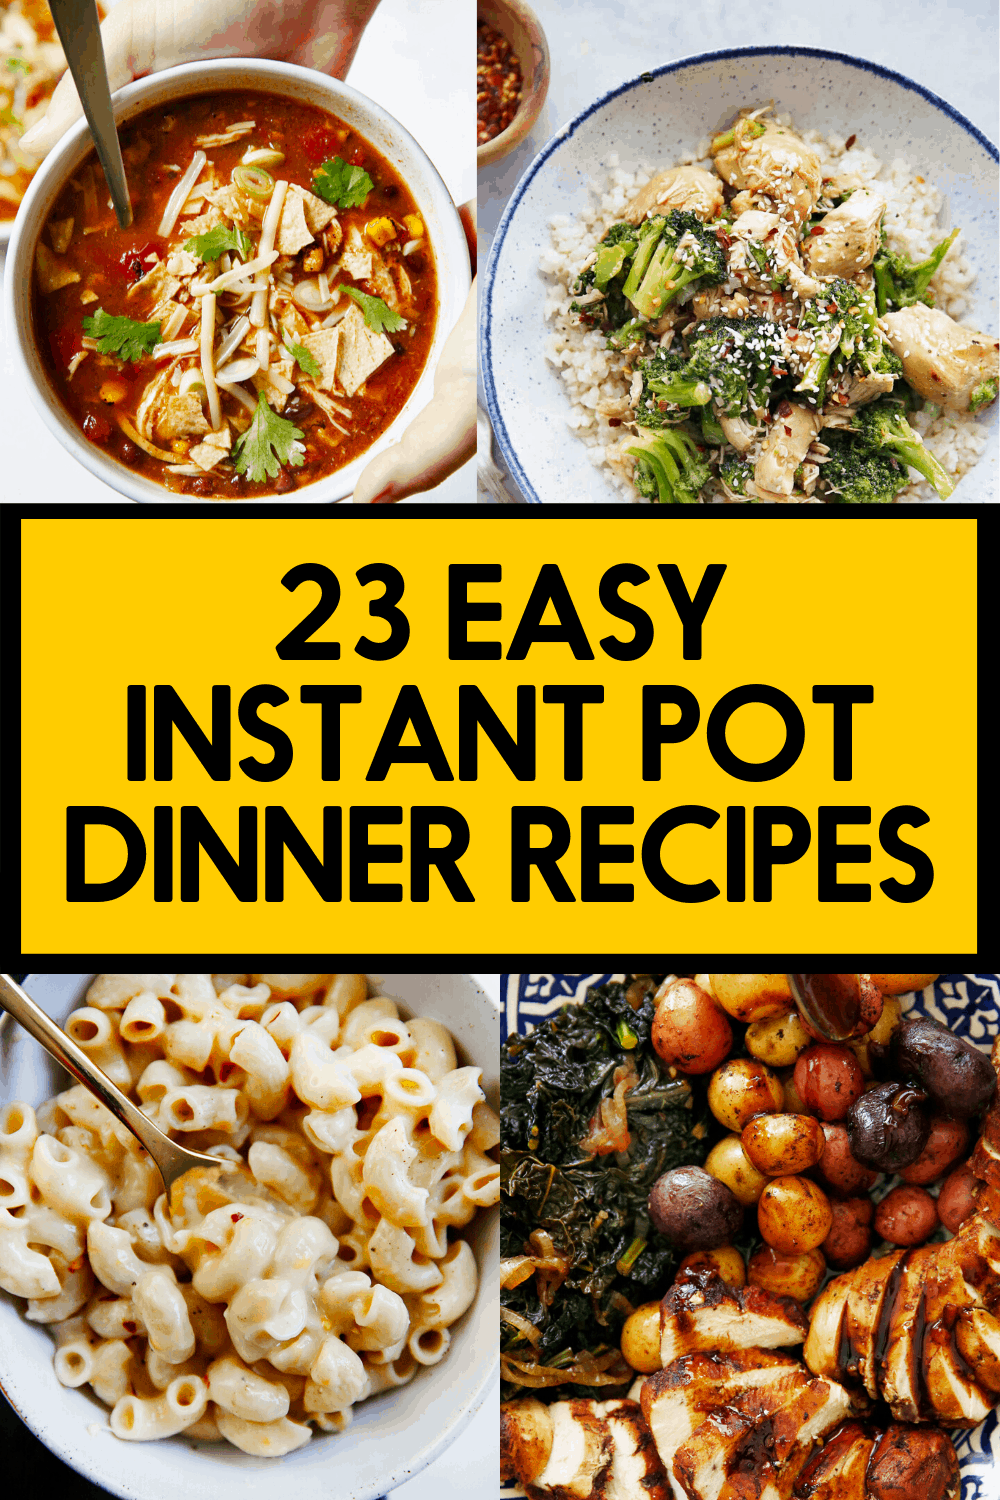 Quick Instant Pot Dinner Recipes